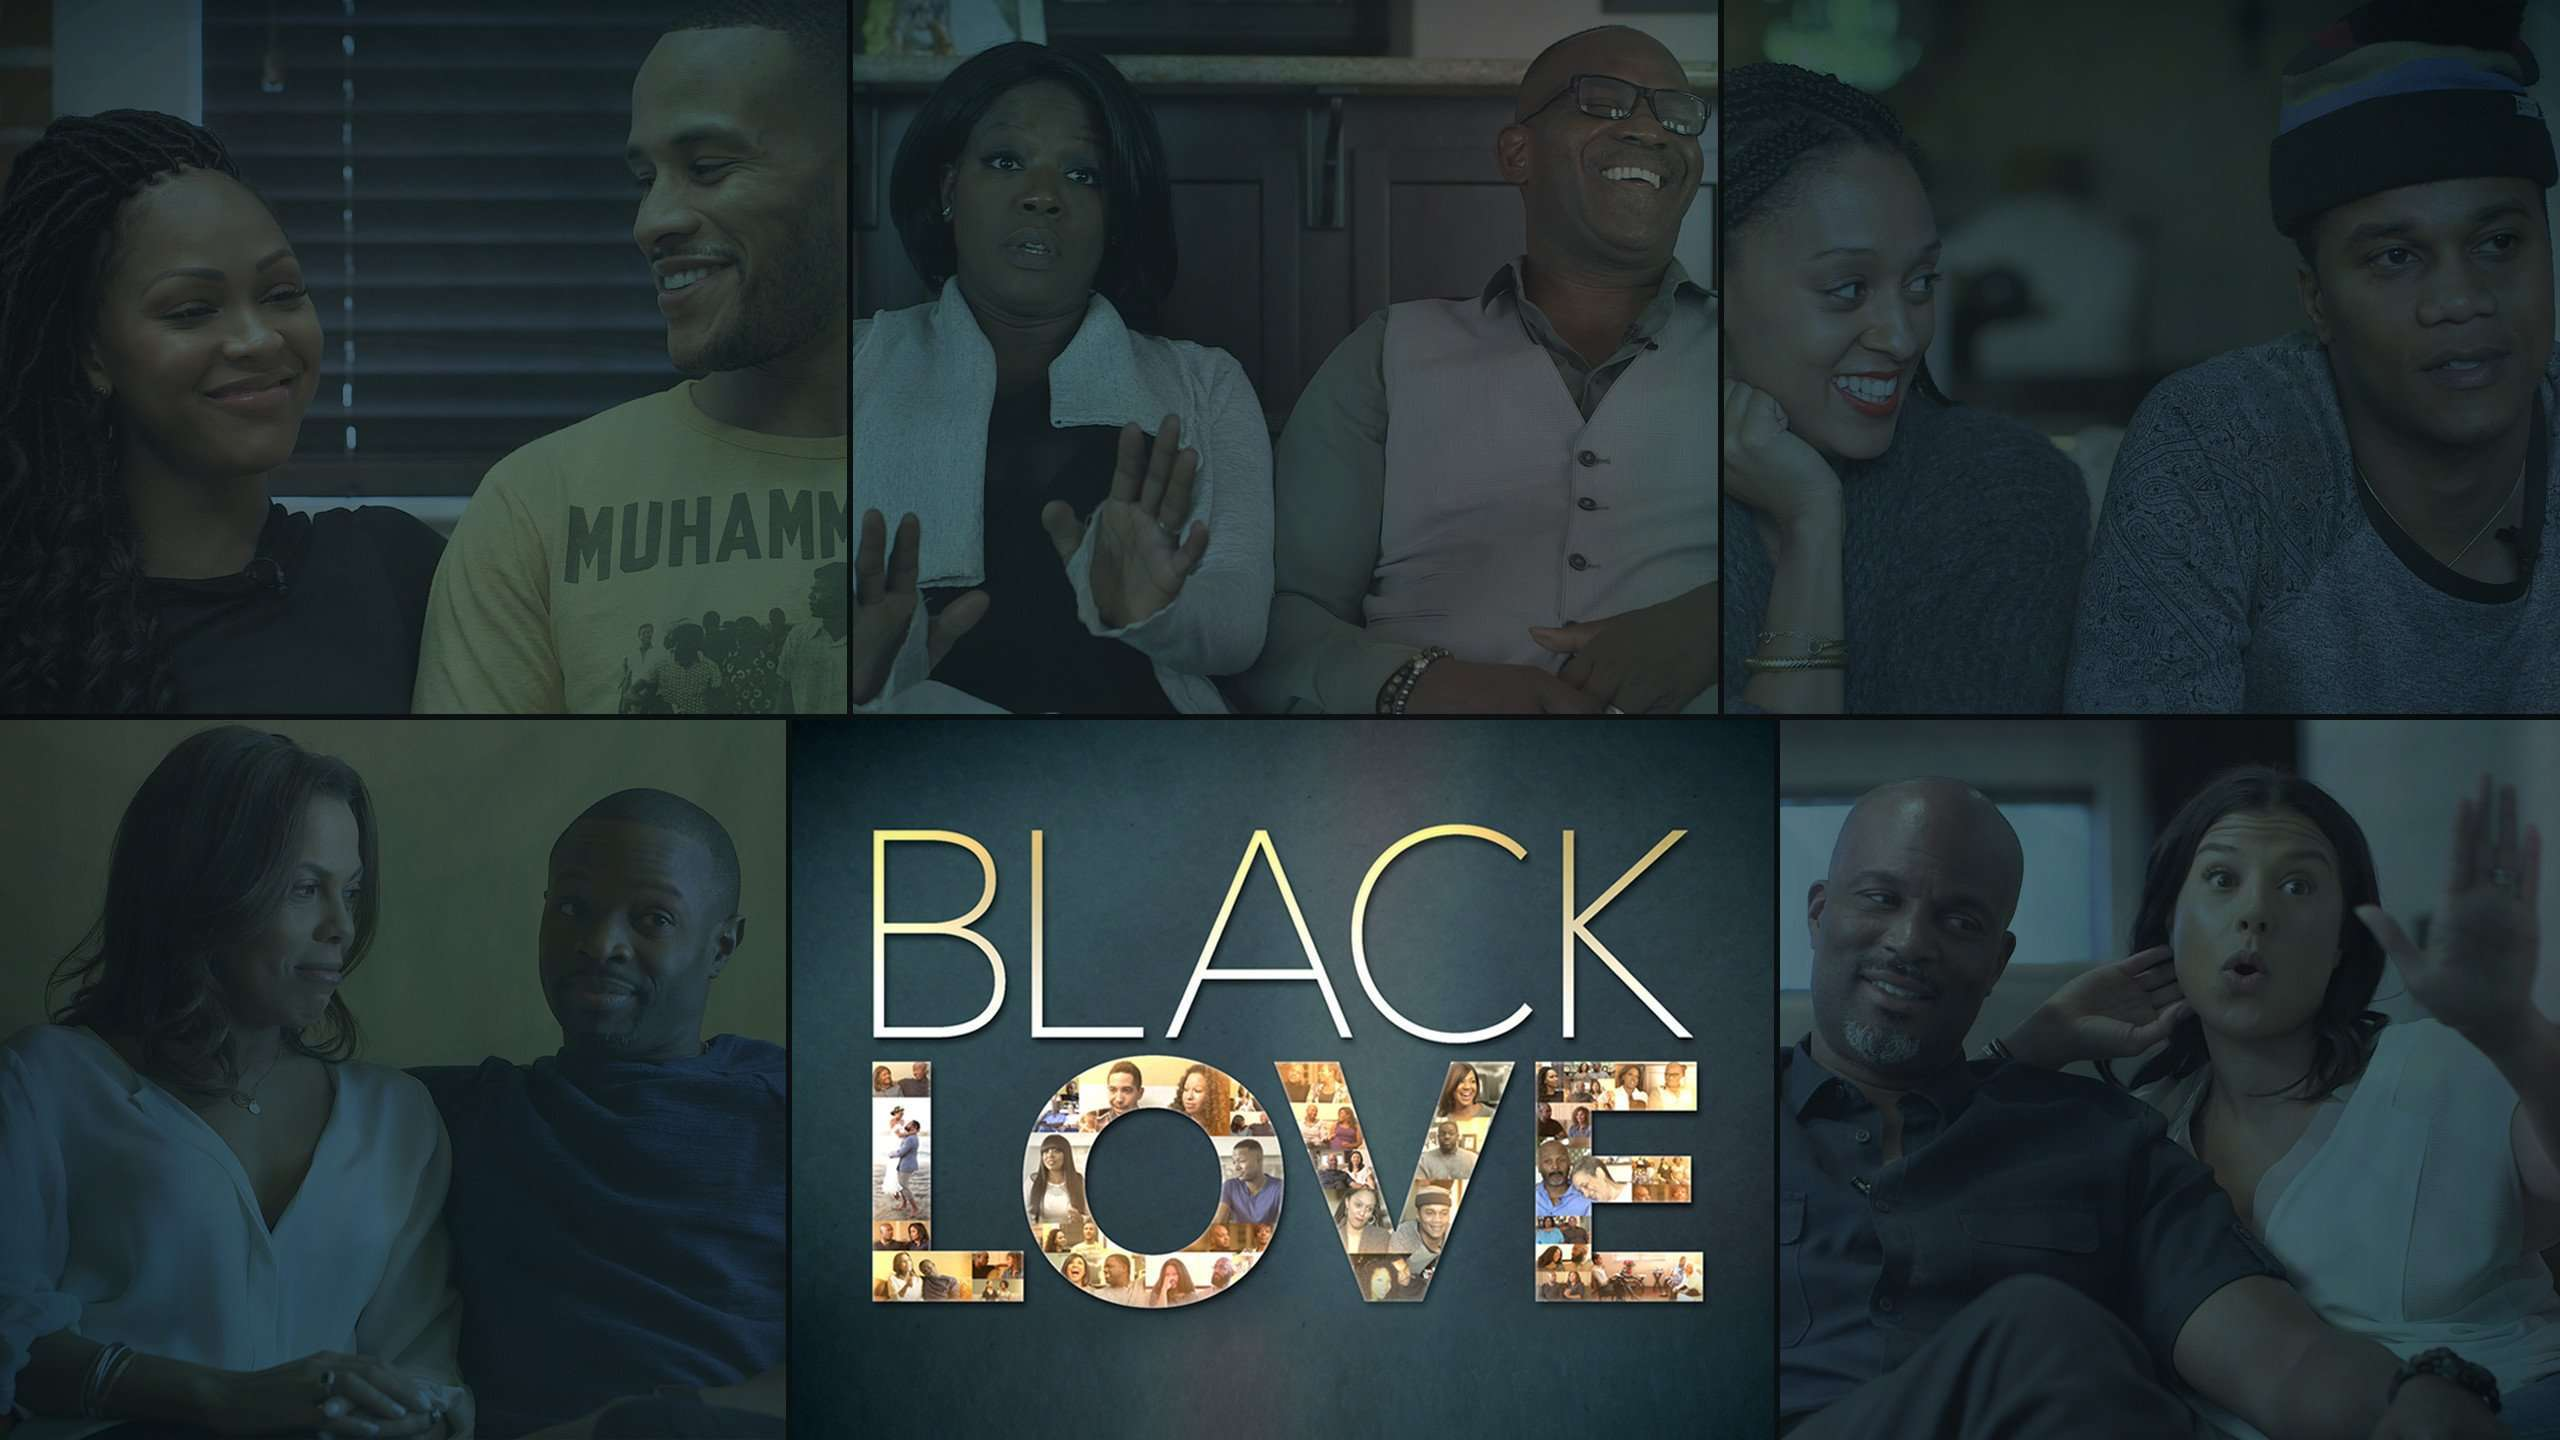 blacklove, own, docuseries, documentary